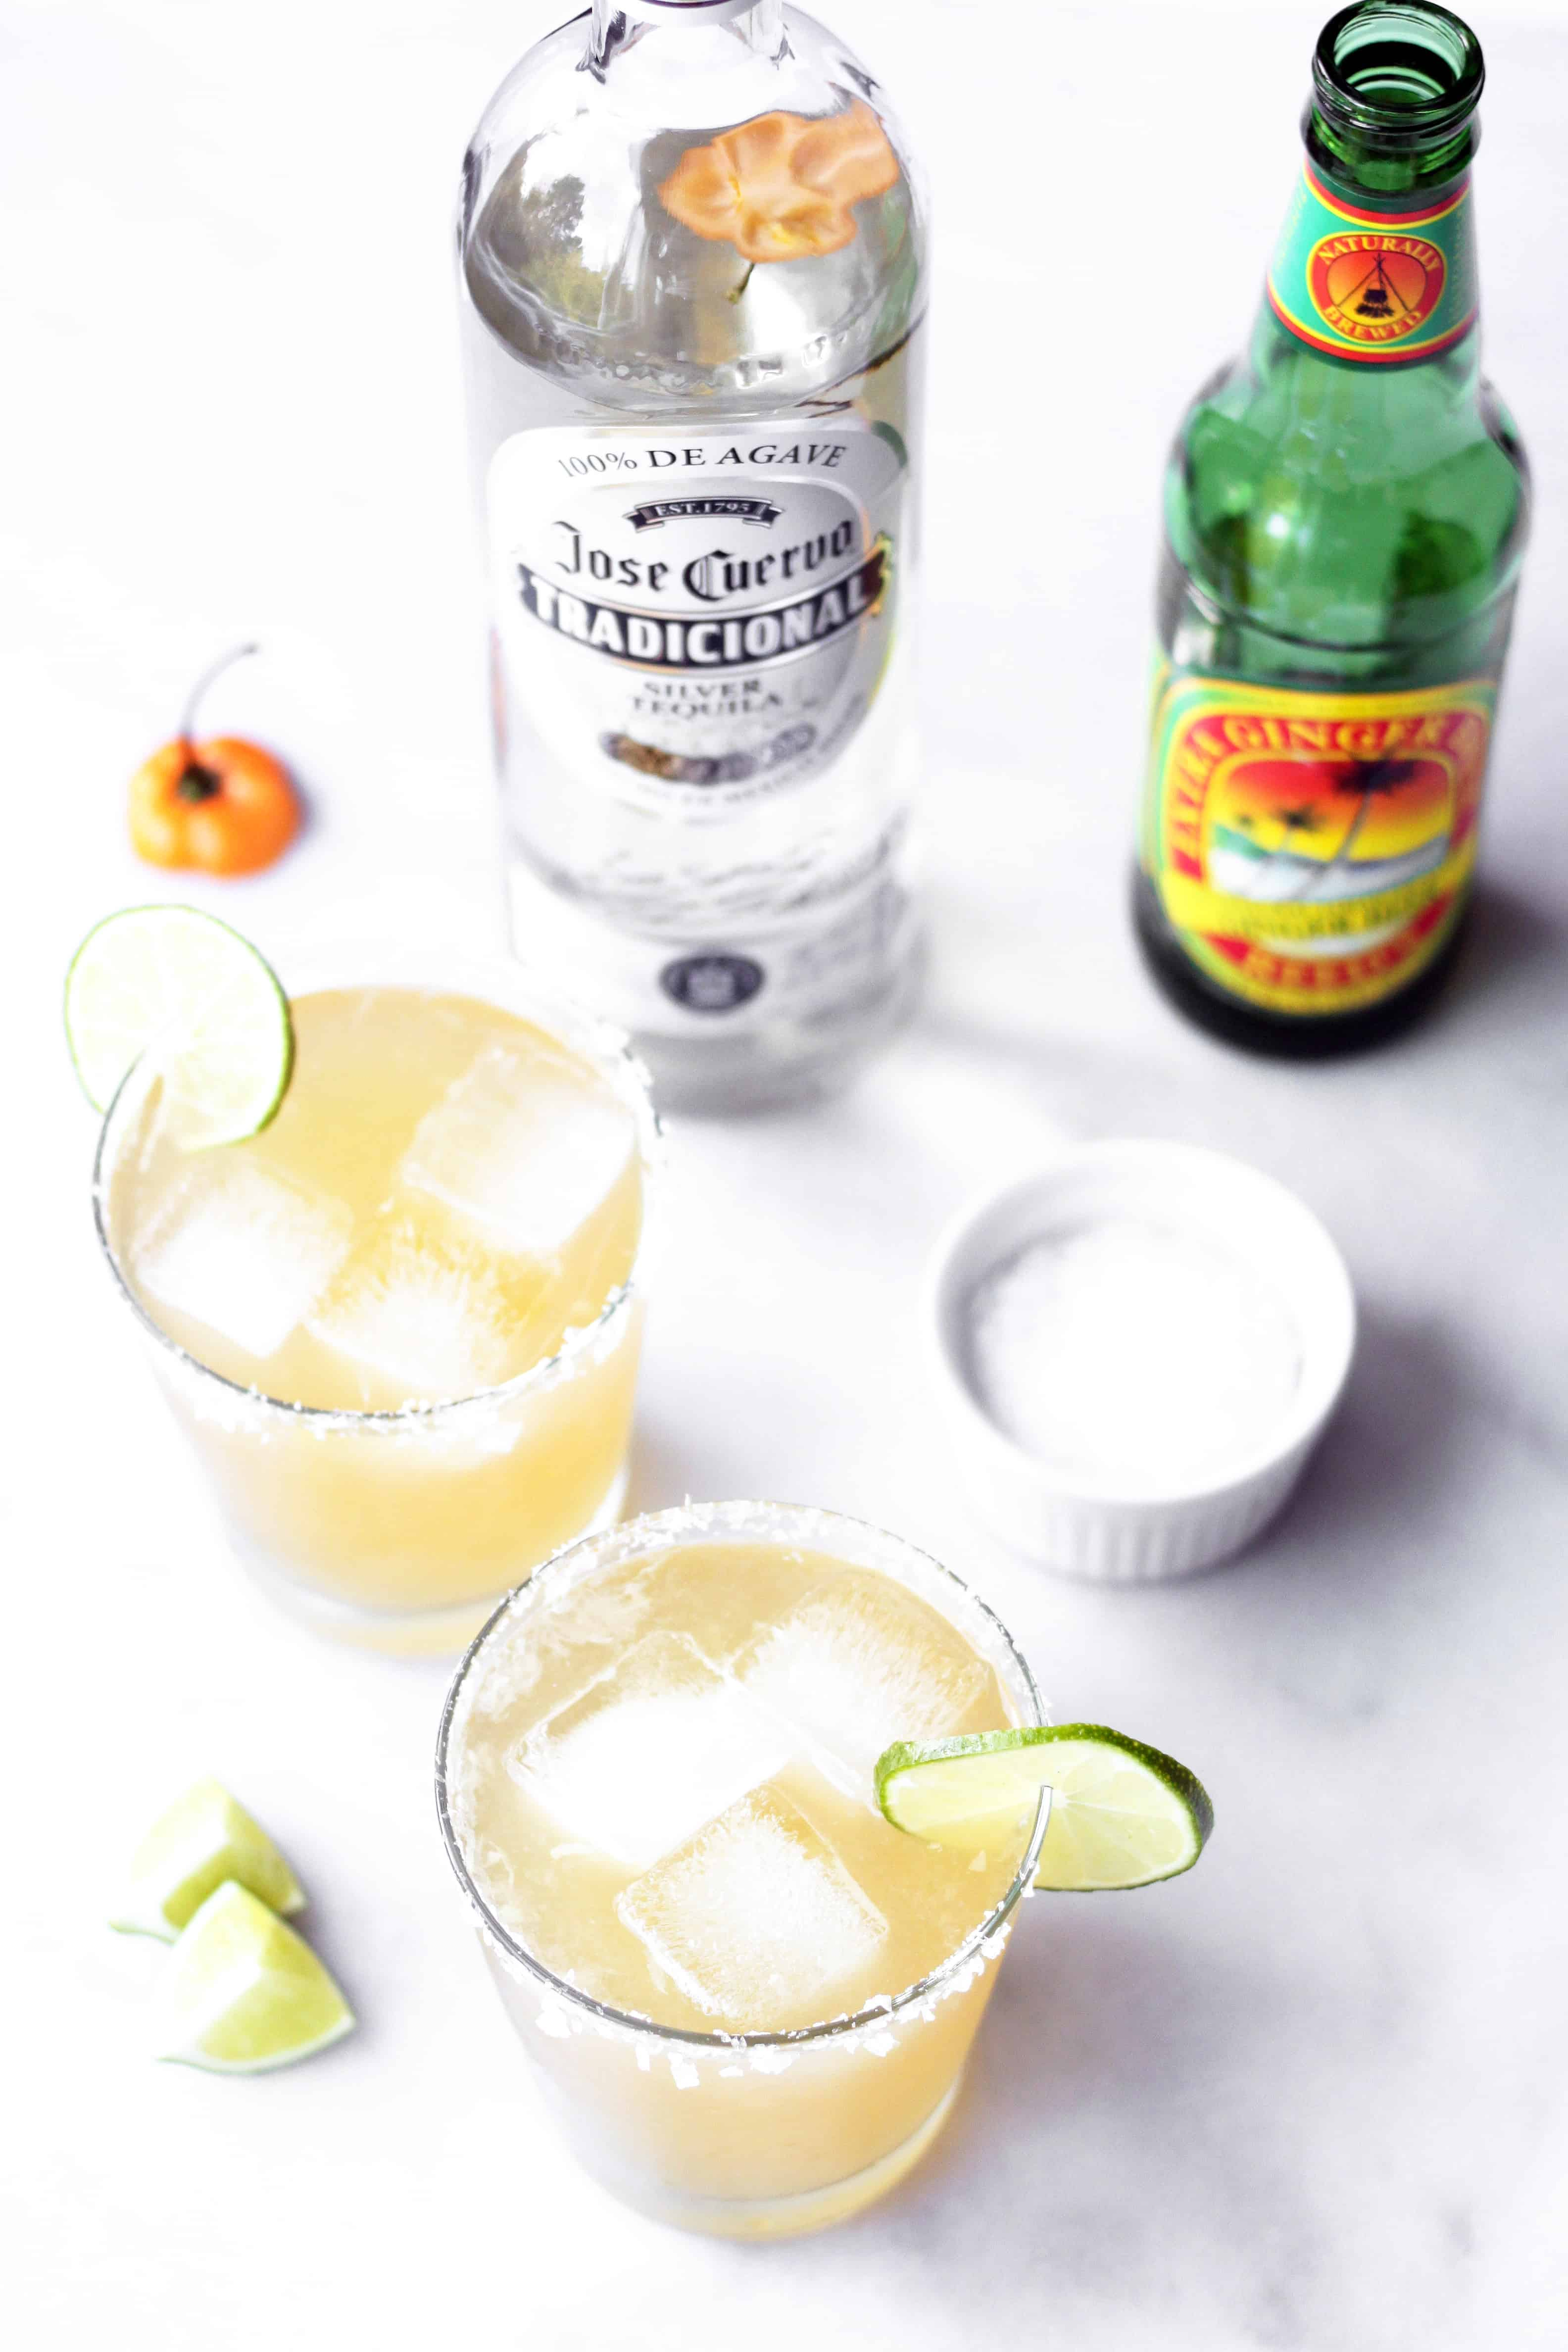 Spicy Habanero ginger beer margarita in glass with ice and lime and salted rim